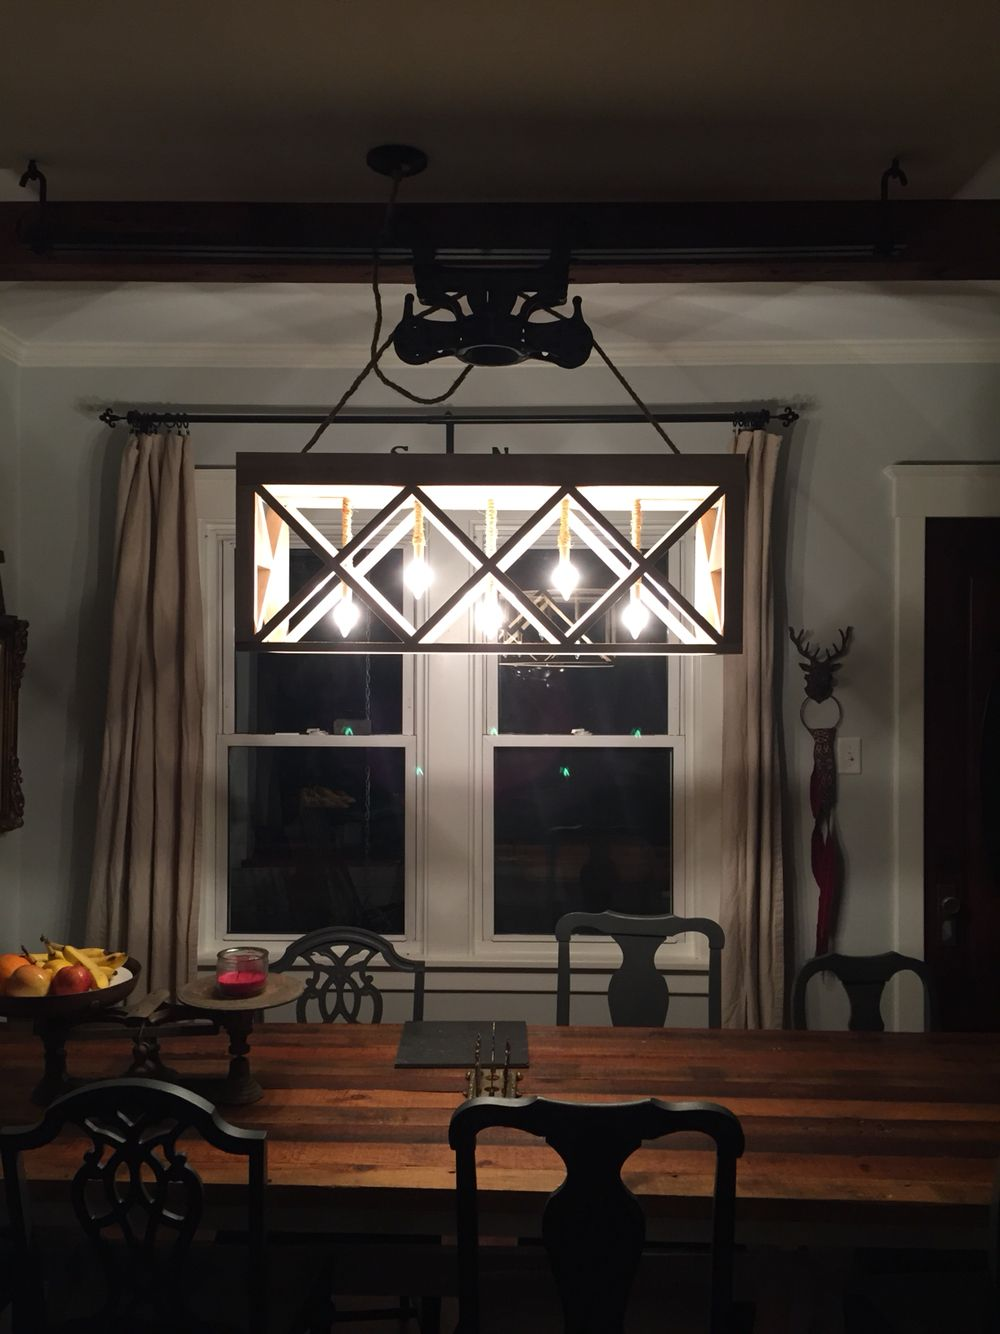 Our new light fixture hay trolley and track poplar rope wire and lighting parts